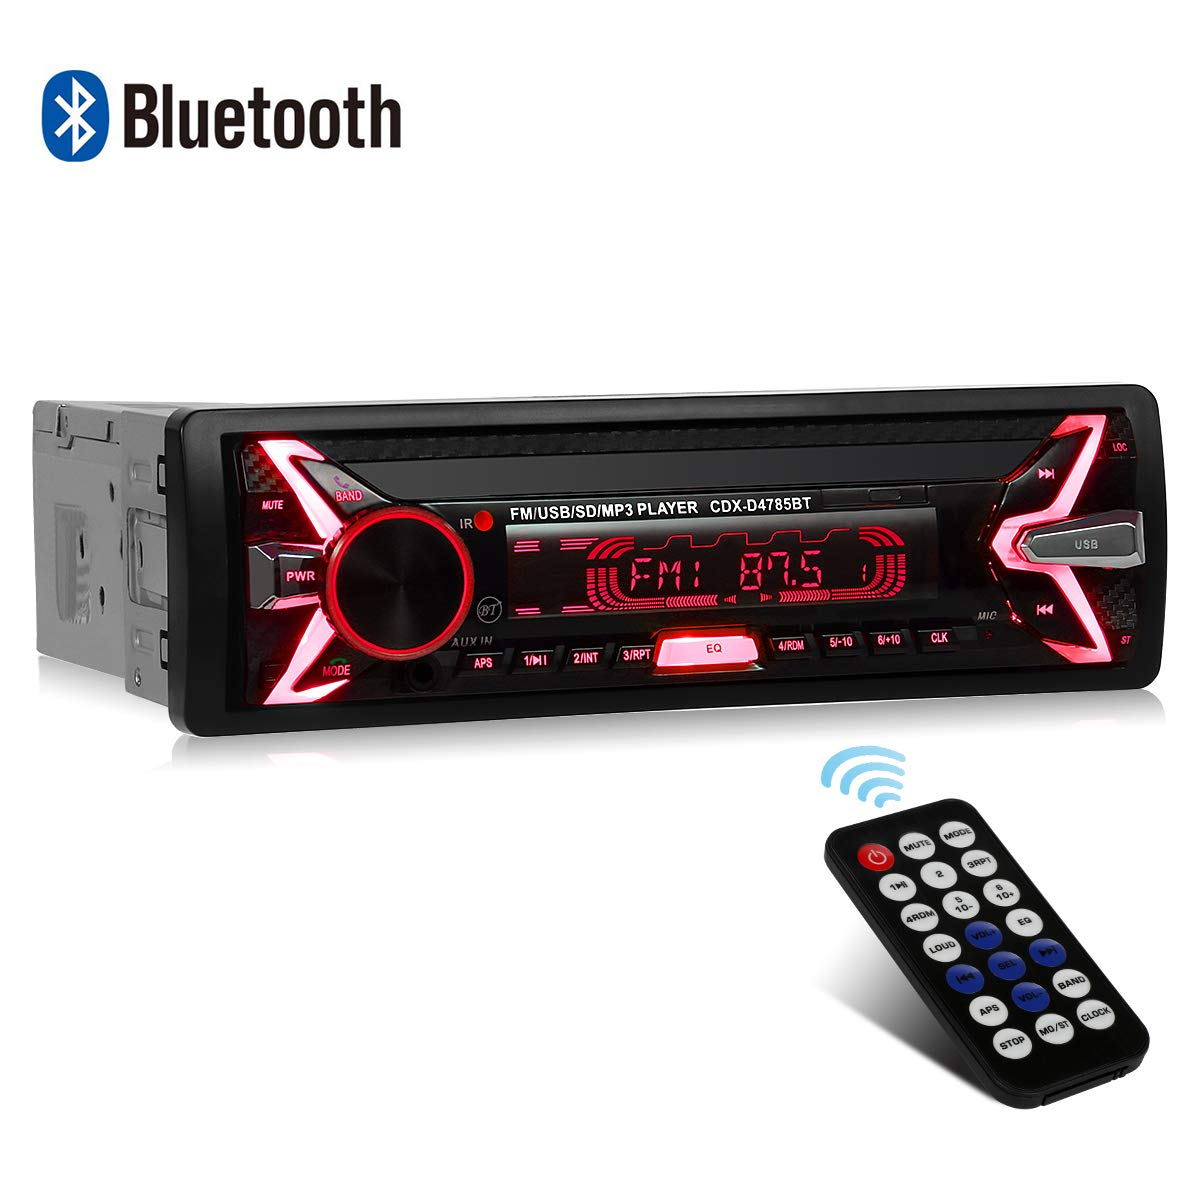 WesKimed Autoradio Bluetooth, 1 Din Radio de Voiture Audio, 7 Couleurs Stereo FM Radio 4x60W Poste Radio Voiture Soutien Bluetooth/USB/SD/AUX/EQ / MP3 / TF + Télécommande (Panneau détachable) product image